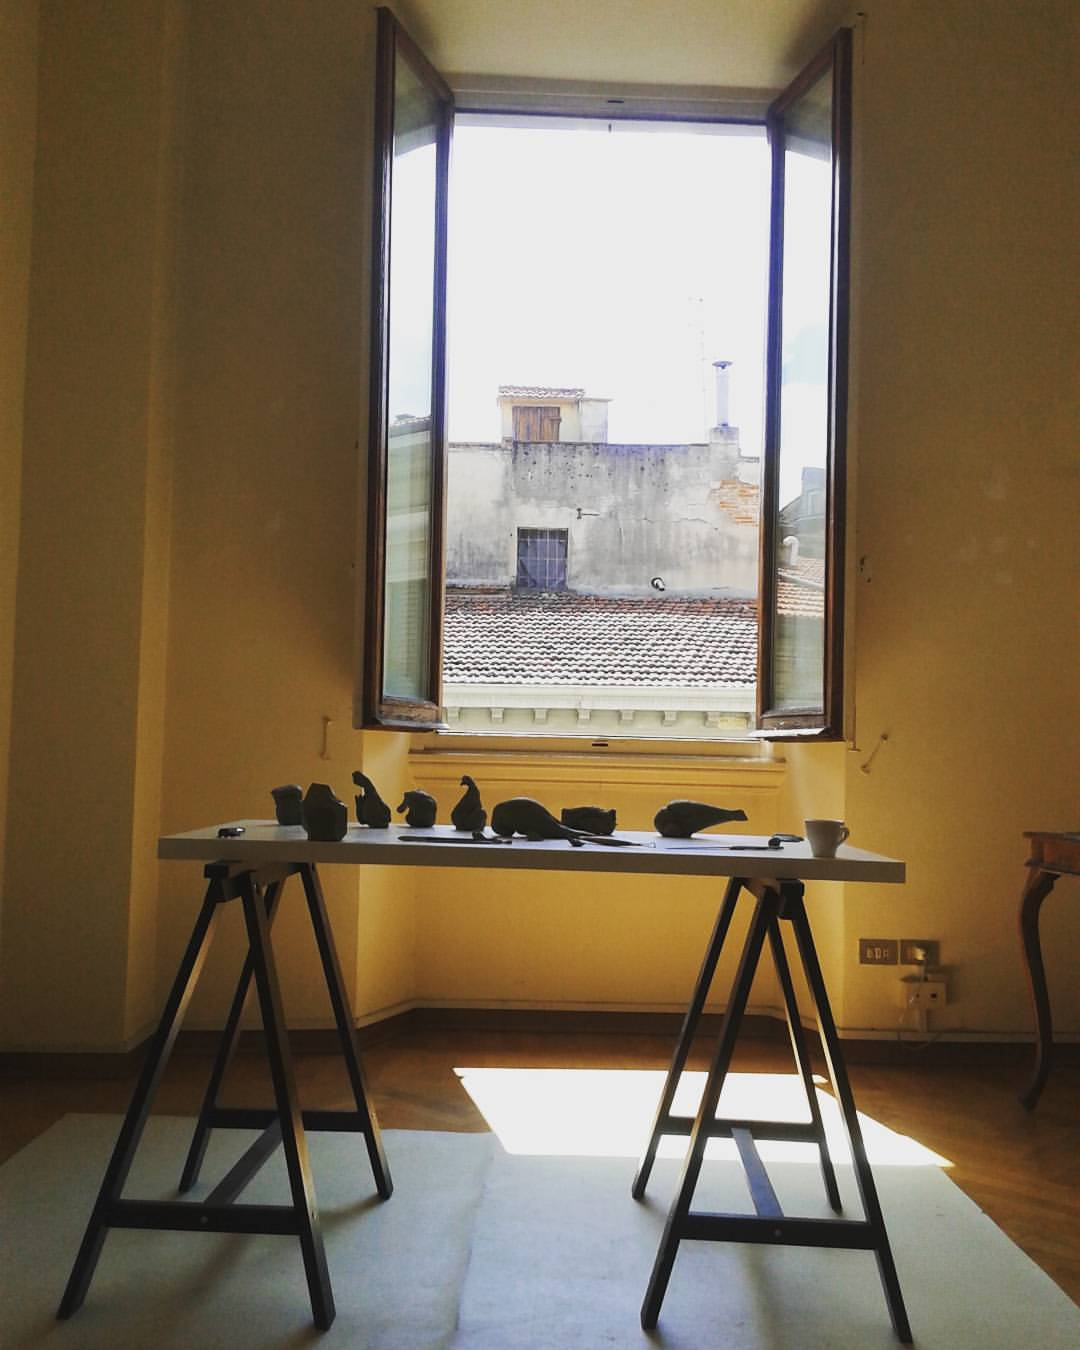 Series of small sculptures sitting on a workbench in a sunny room with an open window overlooking a rooftop